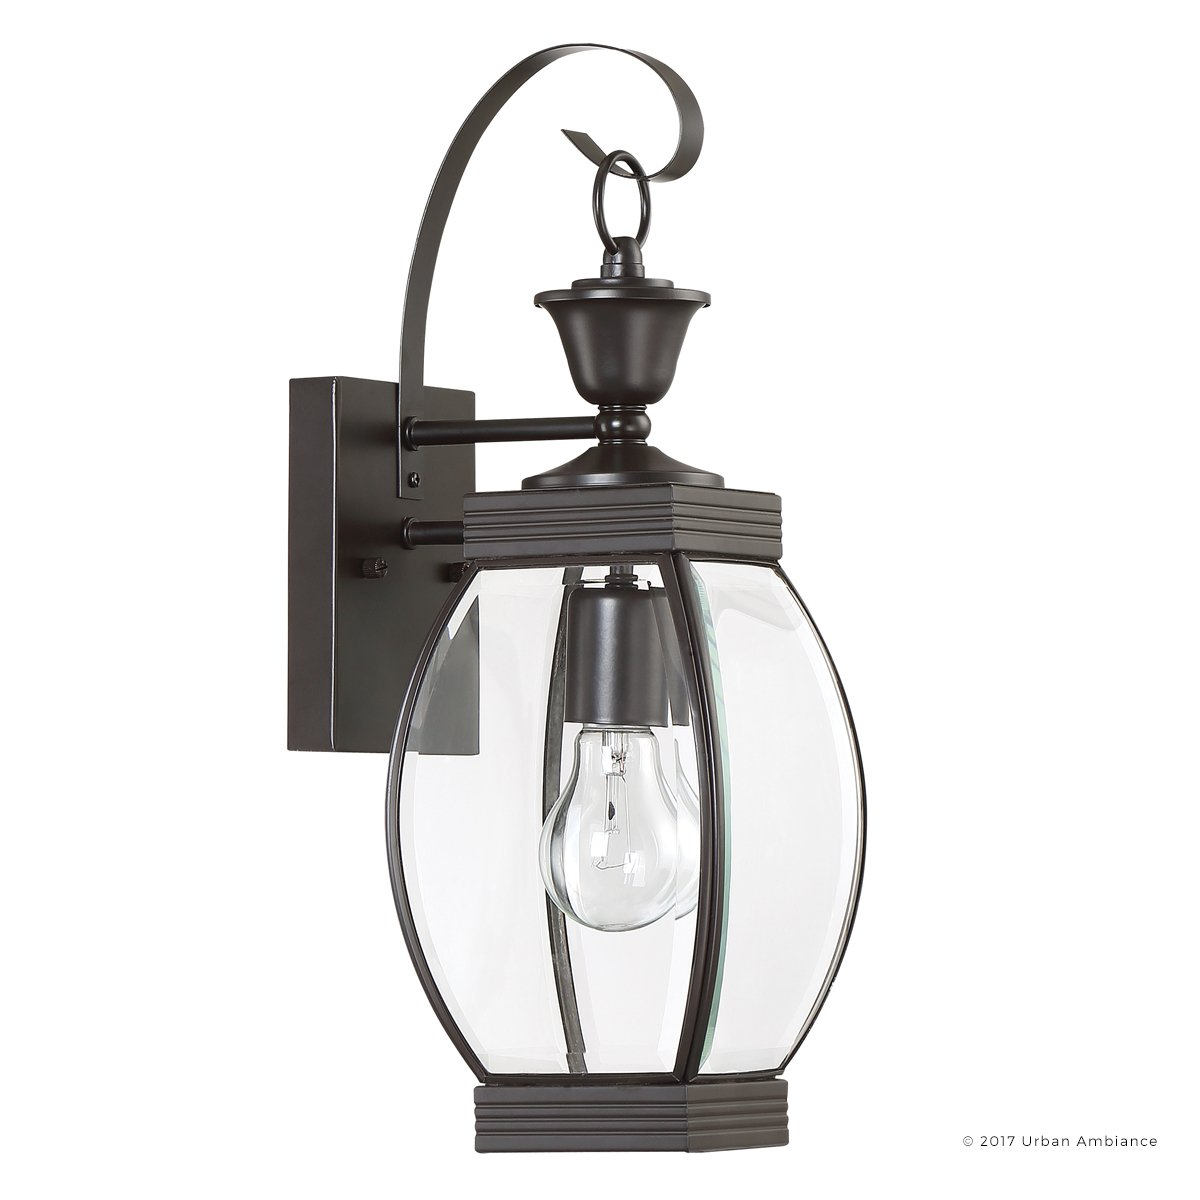 Luxury Colonial Outdoor Wall Light, Medium Size: 17''H x 5.5''W, with Transitional Style Elements, Bowed Design, Gorgeous Dark Medieval Bronze Finish and Beveled Glass, UQL1170 by Urban Ambiance